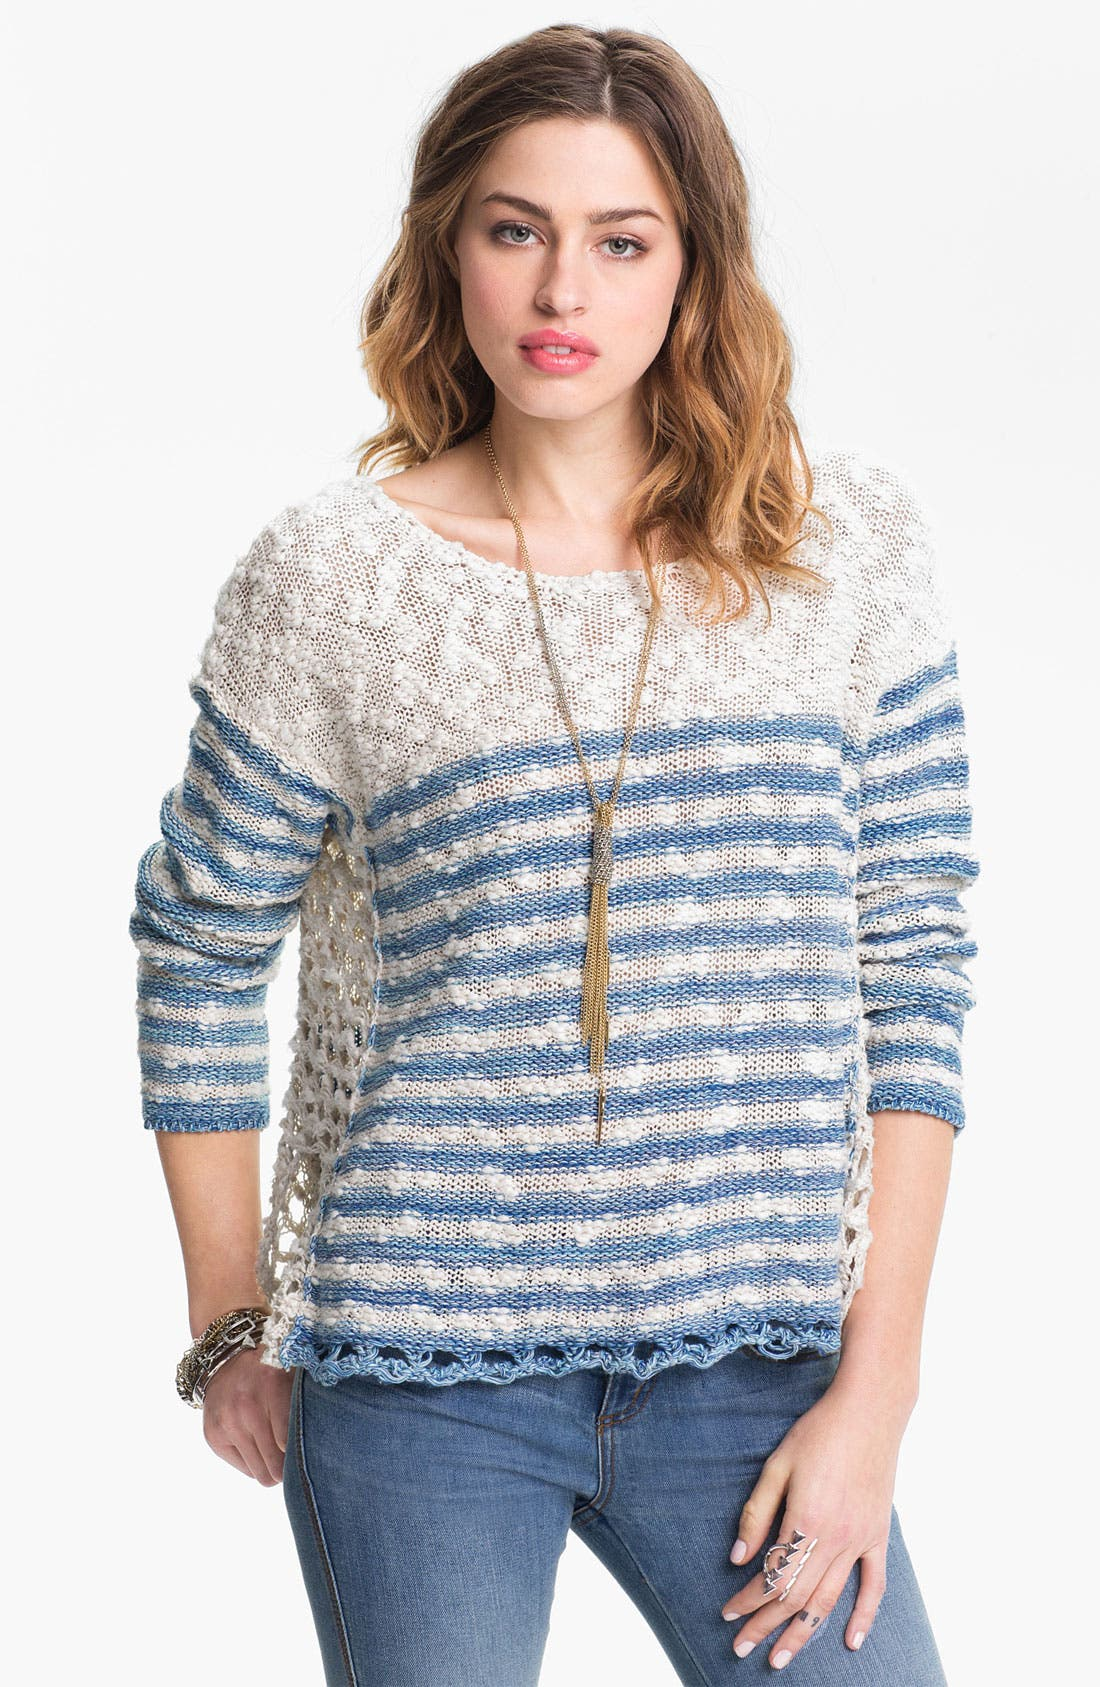 Alternate Image 1 Selected - Free People 'French Creek' Slub Cotton Sweater